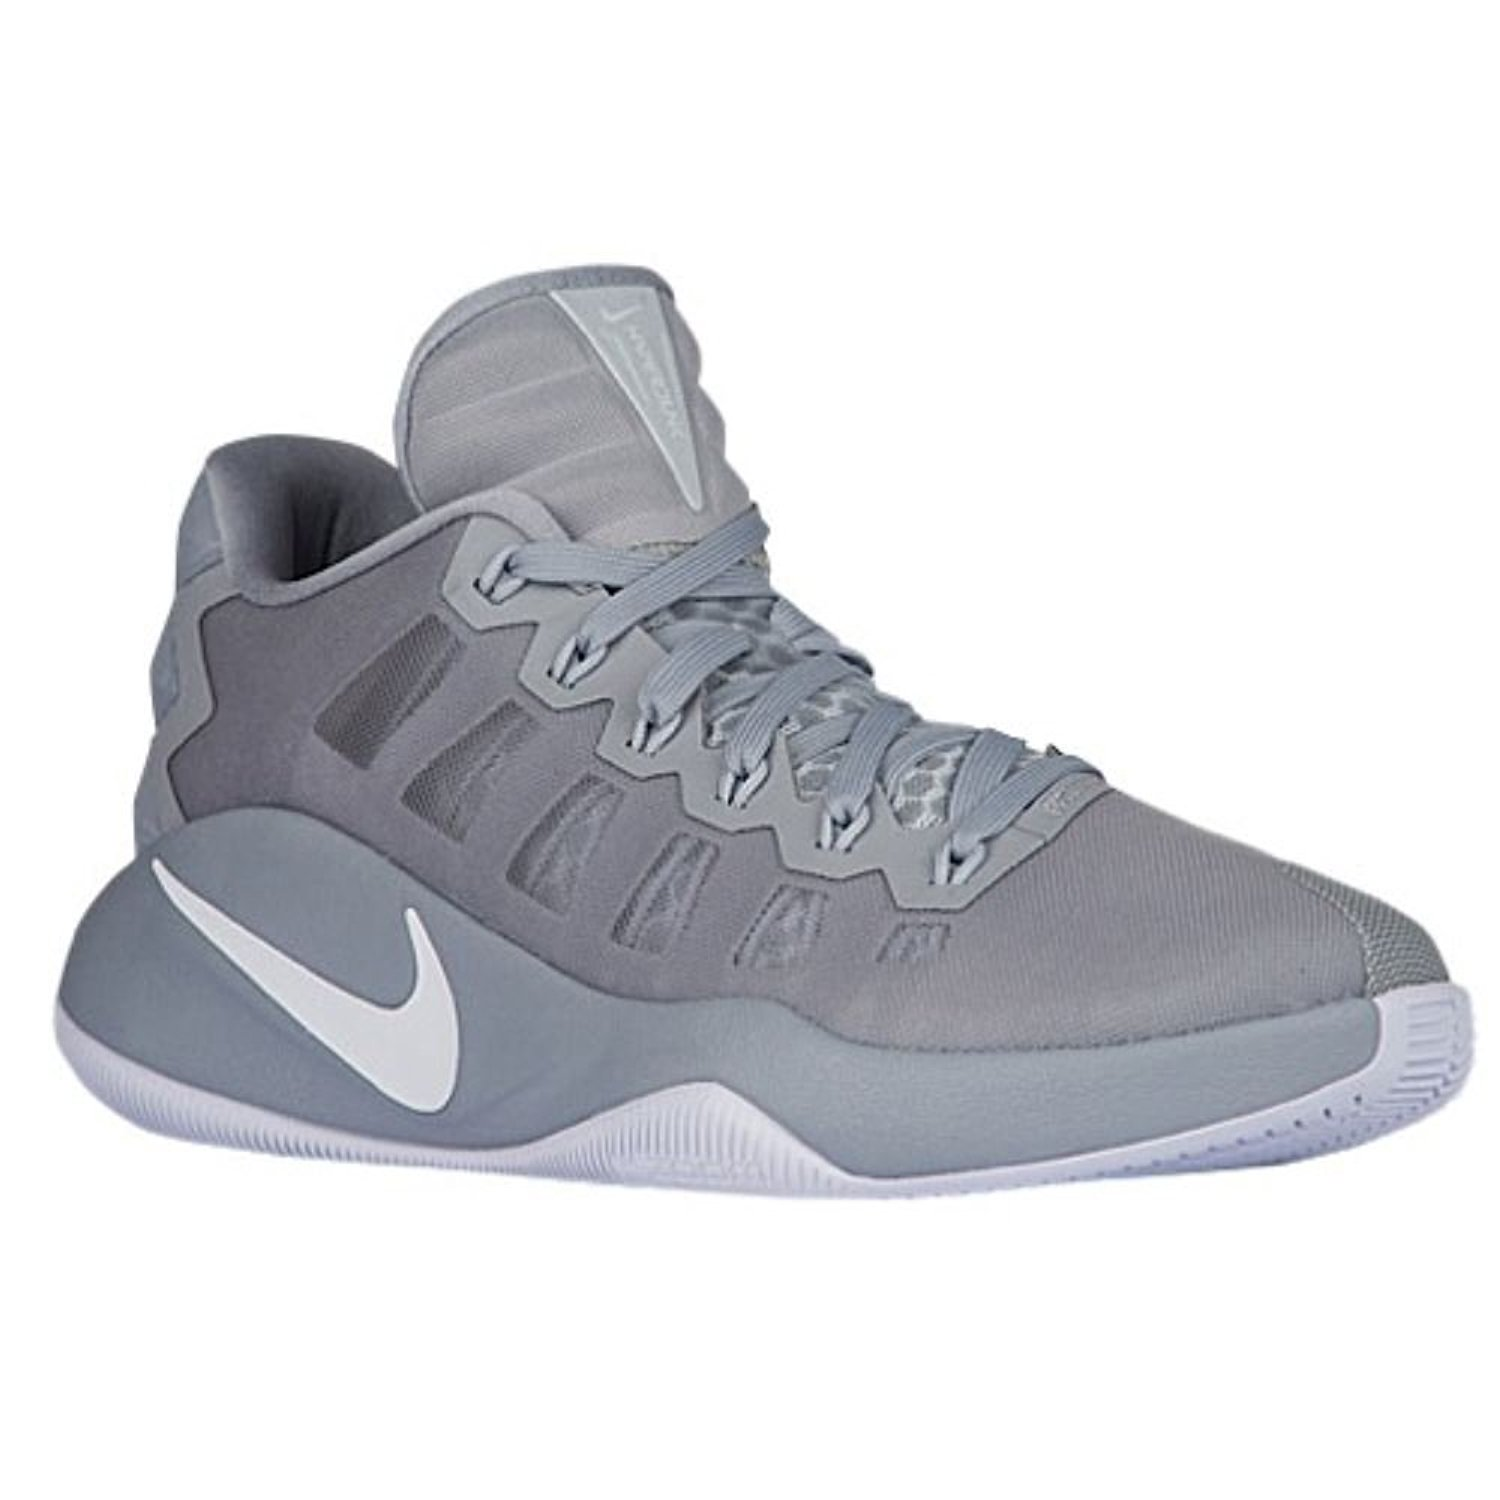 24e4f41caec8b Get Quotations · Nike Men s Hyperdunk 2016 Low EP Running Shoes (9.5 D(M)  ...